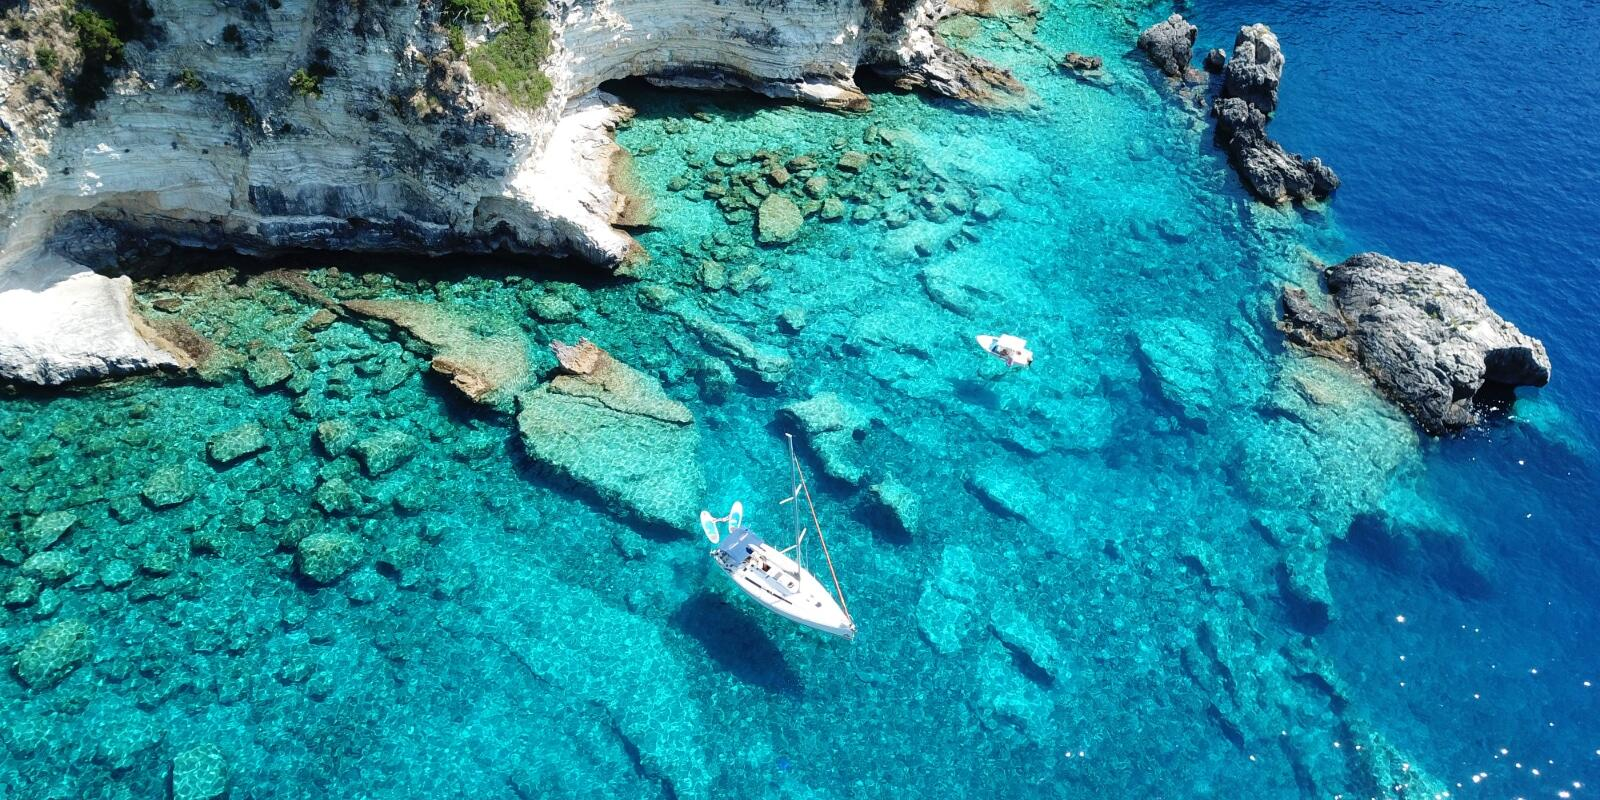 South of Lefkas between pristine nature bays of Meganisi and myths of Ithaca